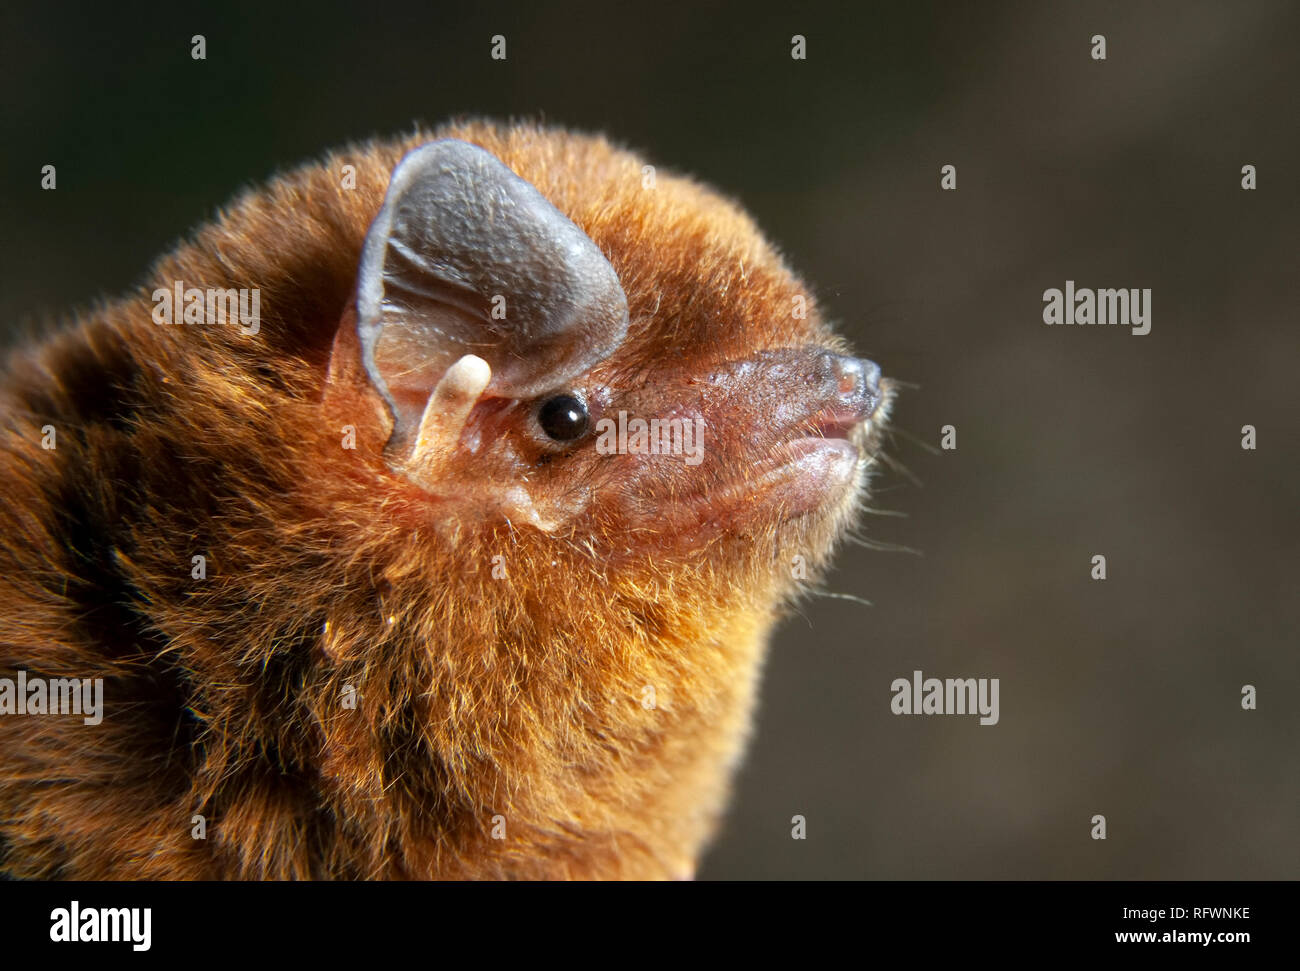 Greater long-fingered (or bent-winged) bat (Miniopterus inflatus) head, Kakamega Forest, Kenya. Stock Photo